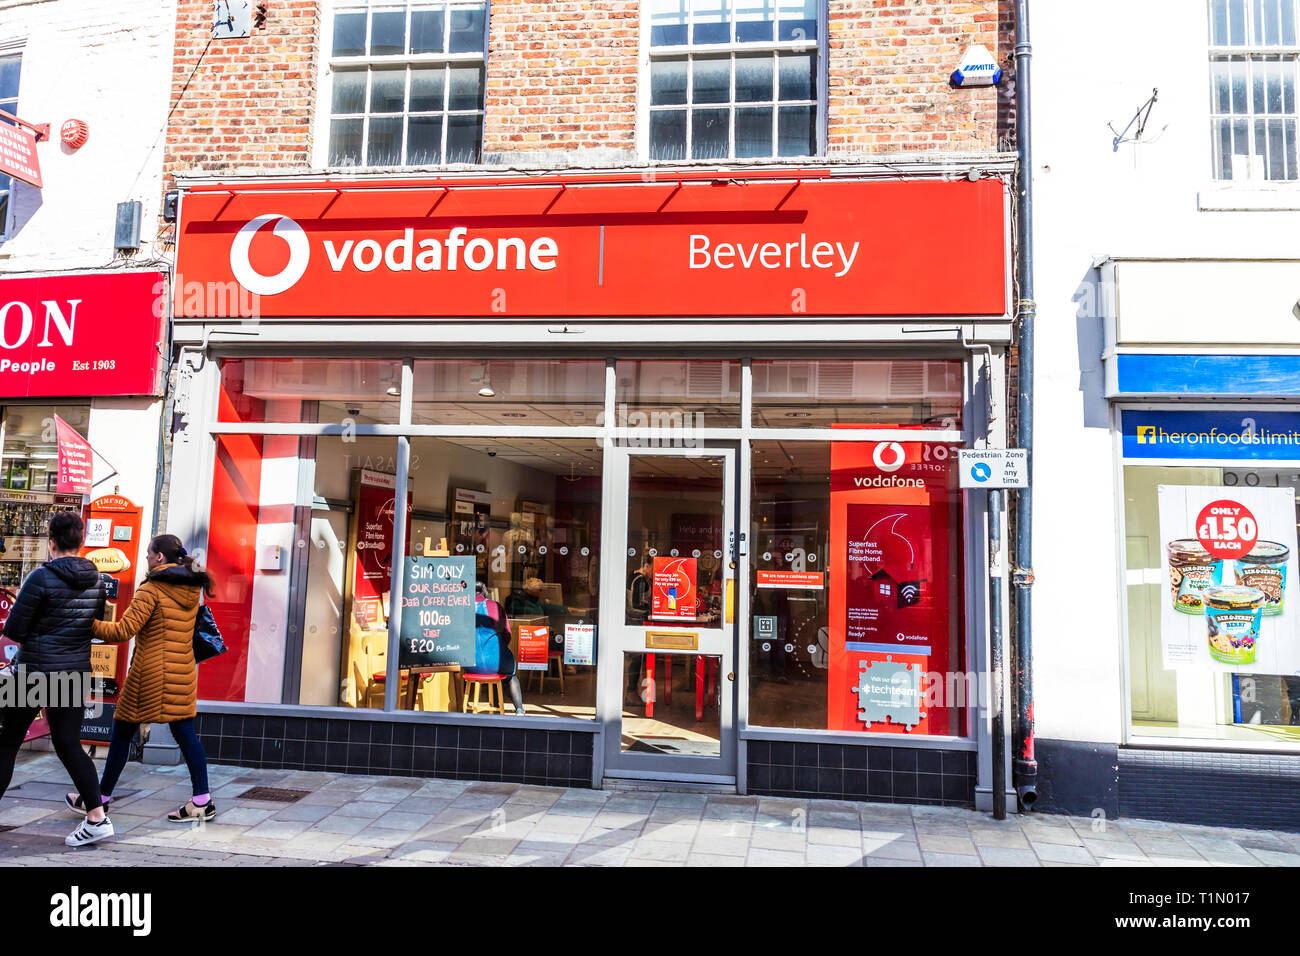 Vodafone Store, Vodafone mobile phone phones shop store sign building exterior name smartphone cities British chain brand Beverley UK stores shops Stock Photo